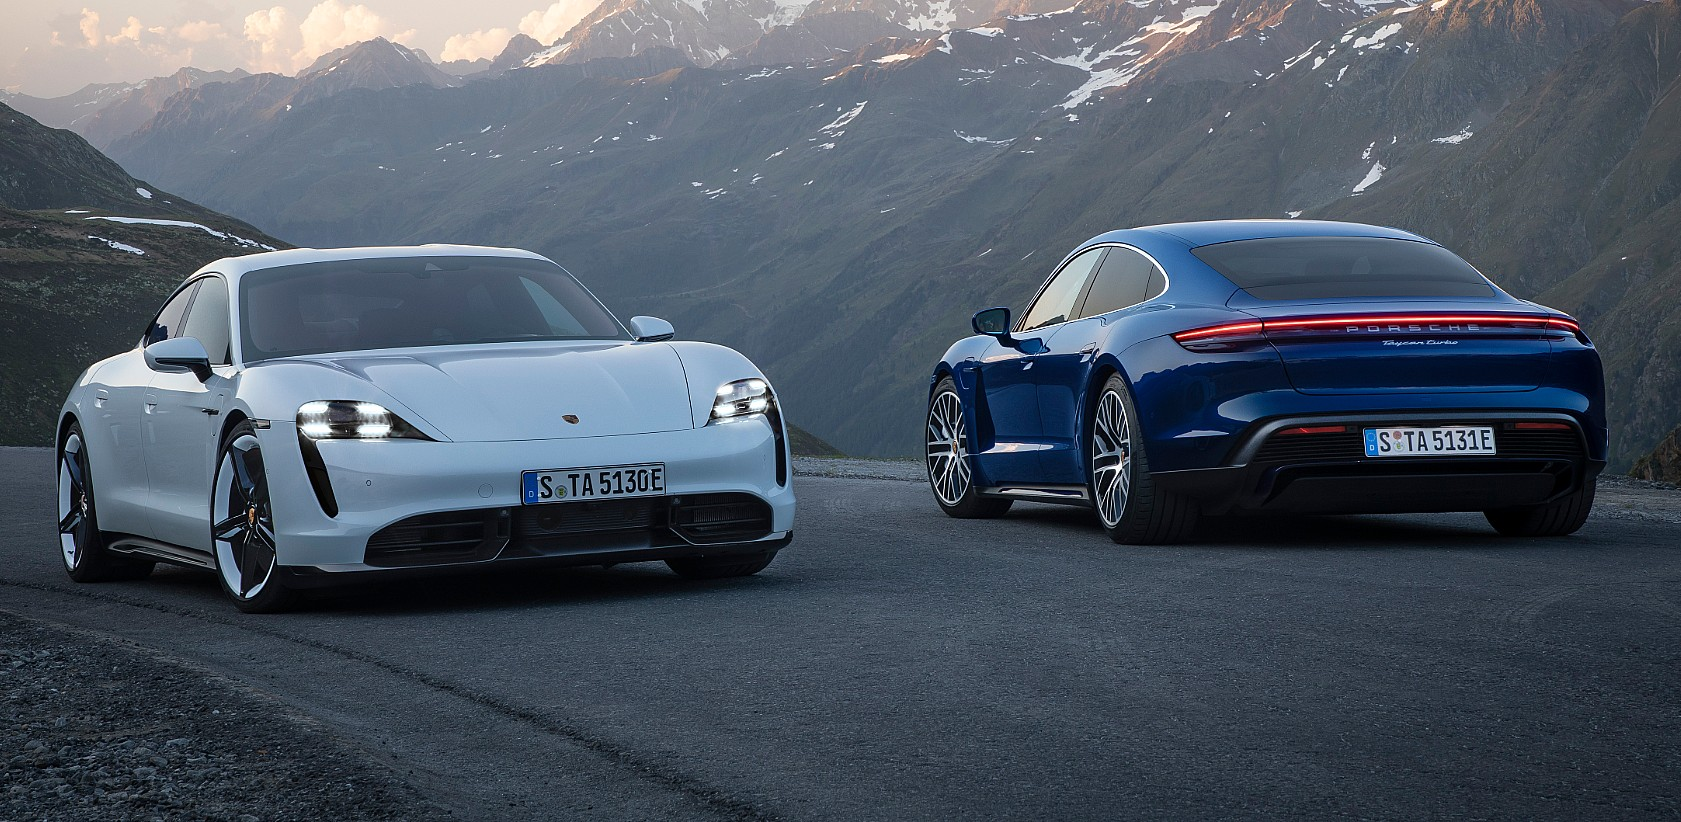 Porsche Taycan Turbo Vs Turbo S Price Performance And